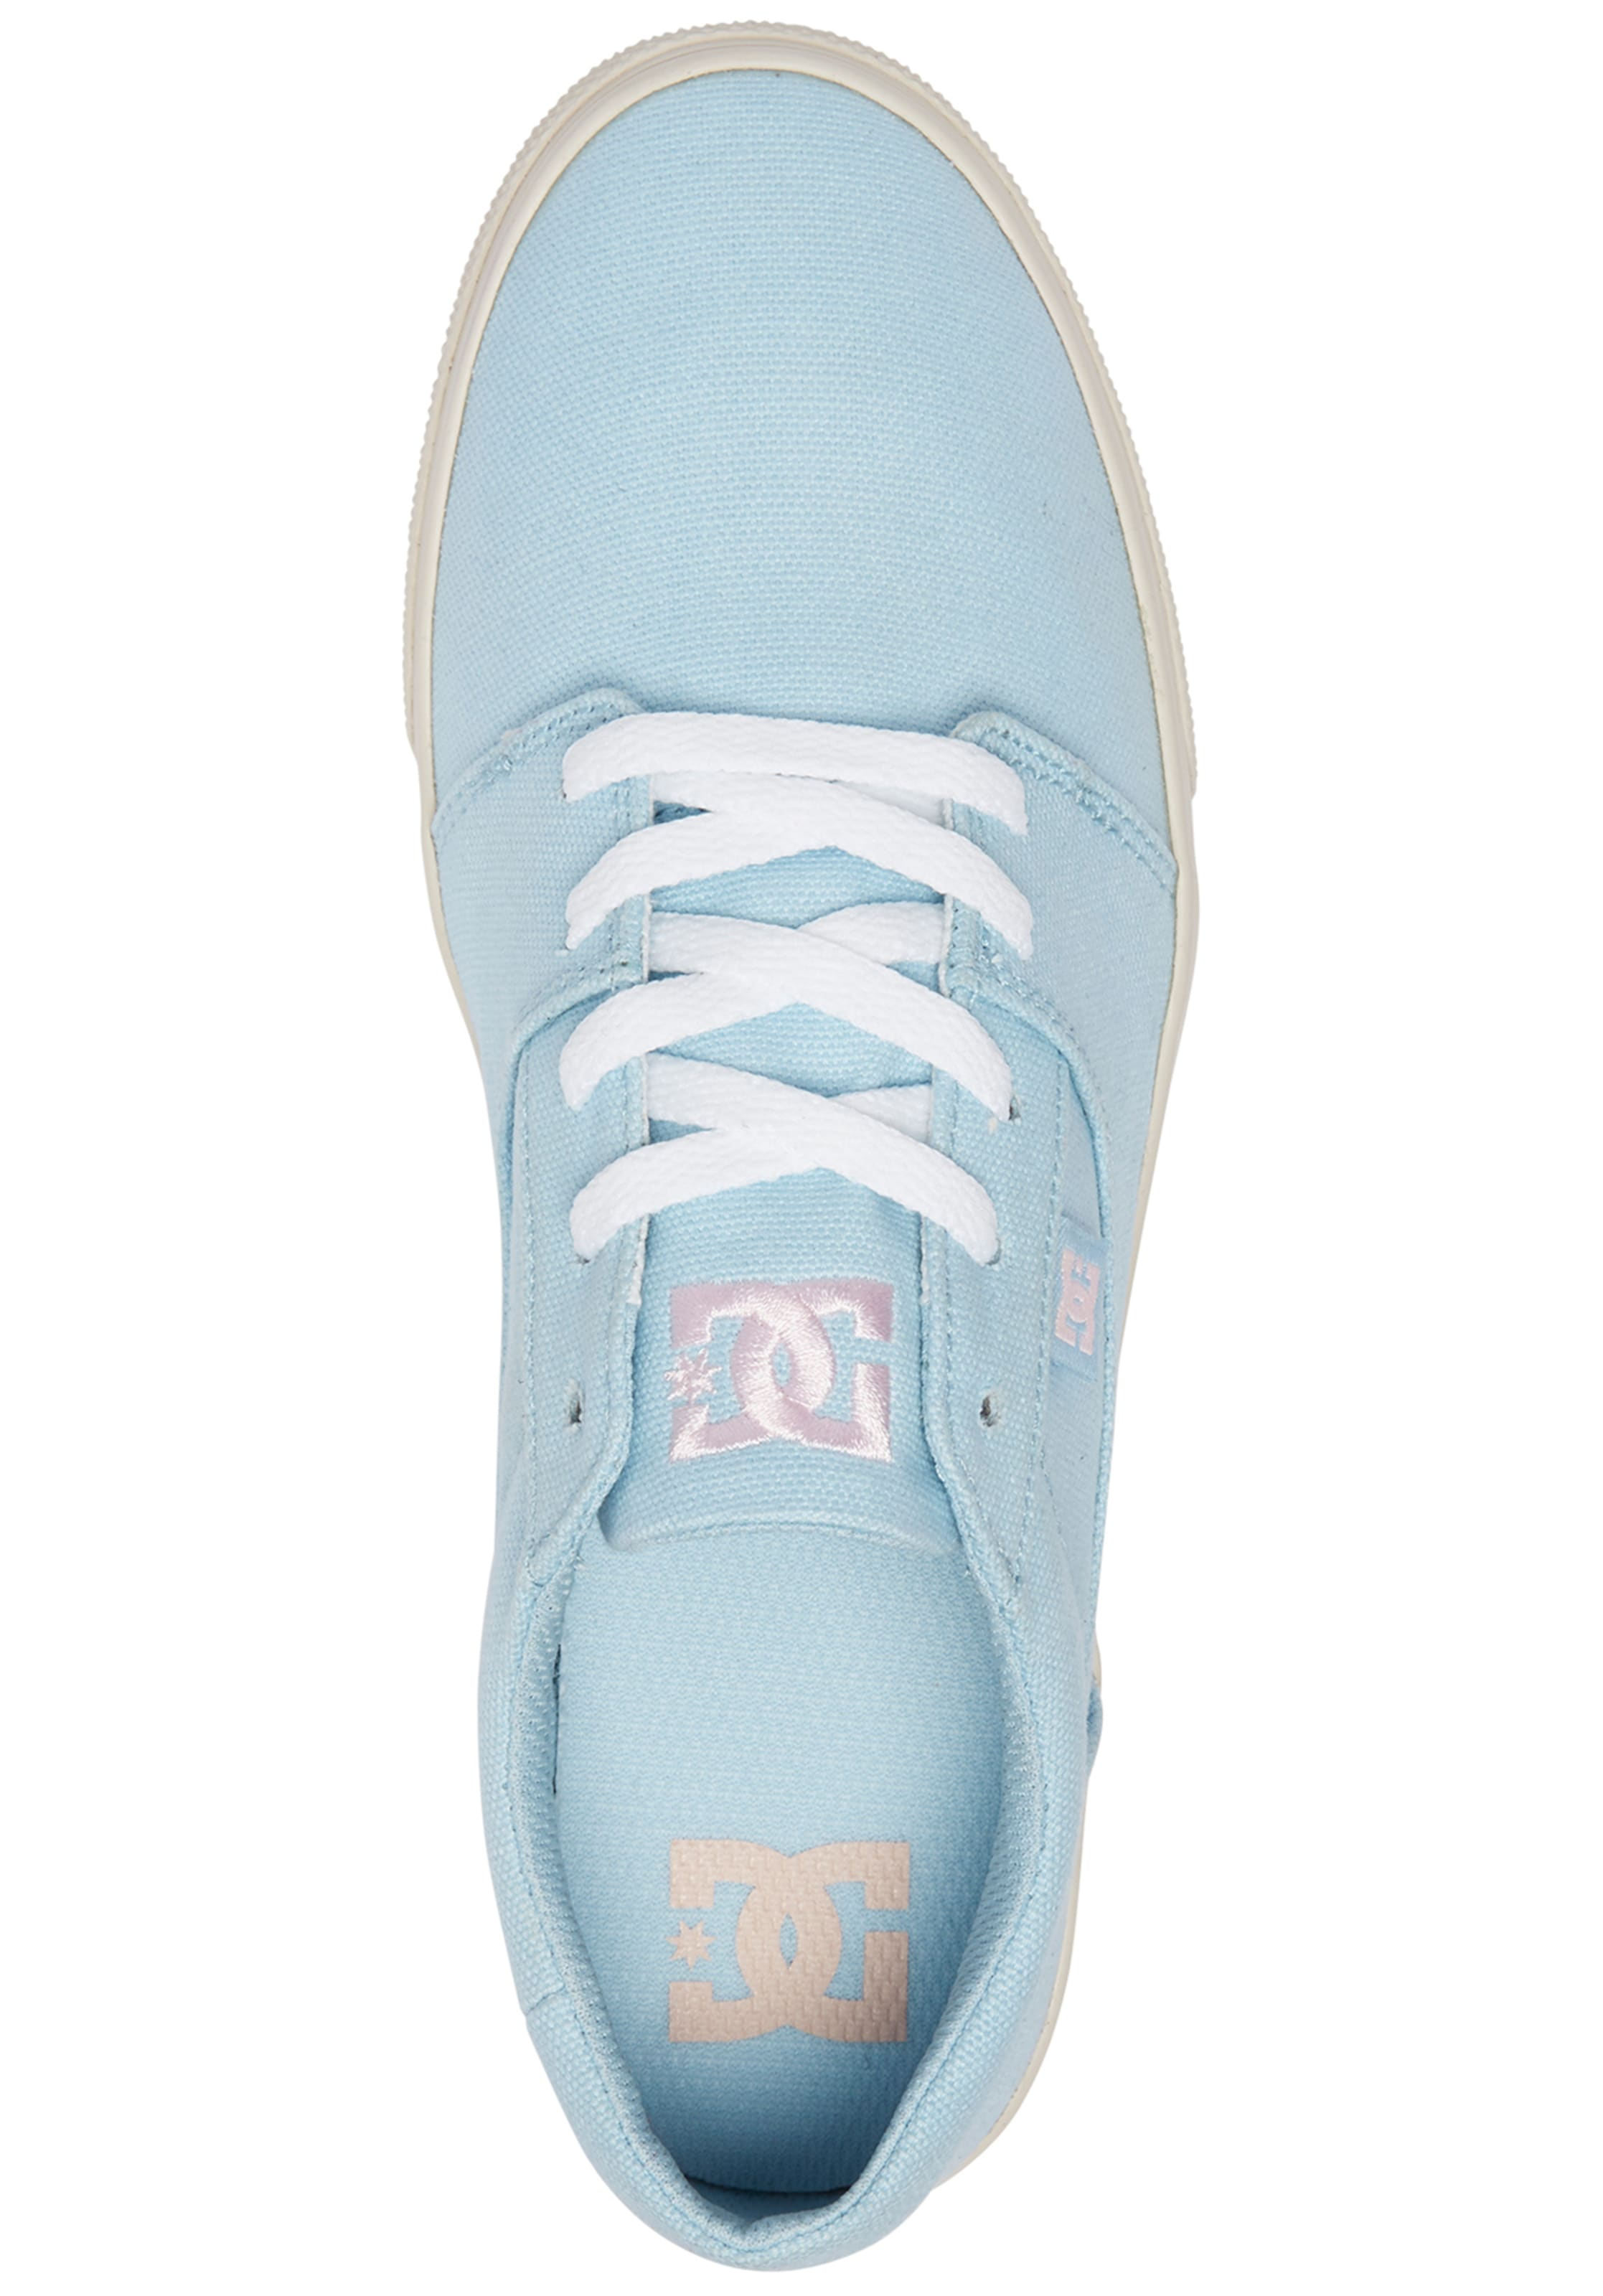 Hellblau Sneaker Shoes In Dc Tx' 'tonik nw8Nmv0